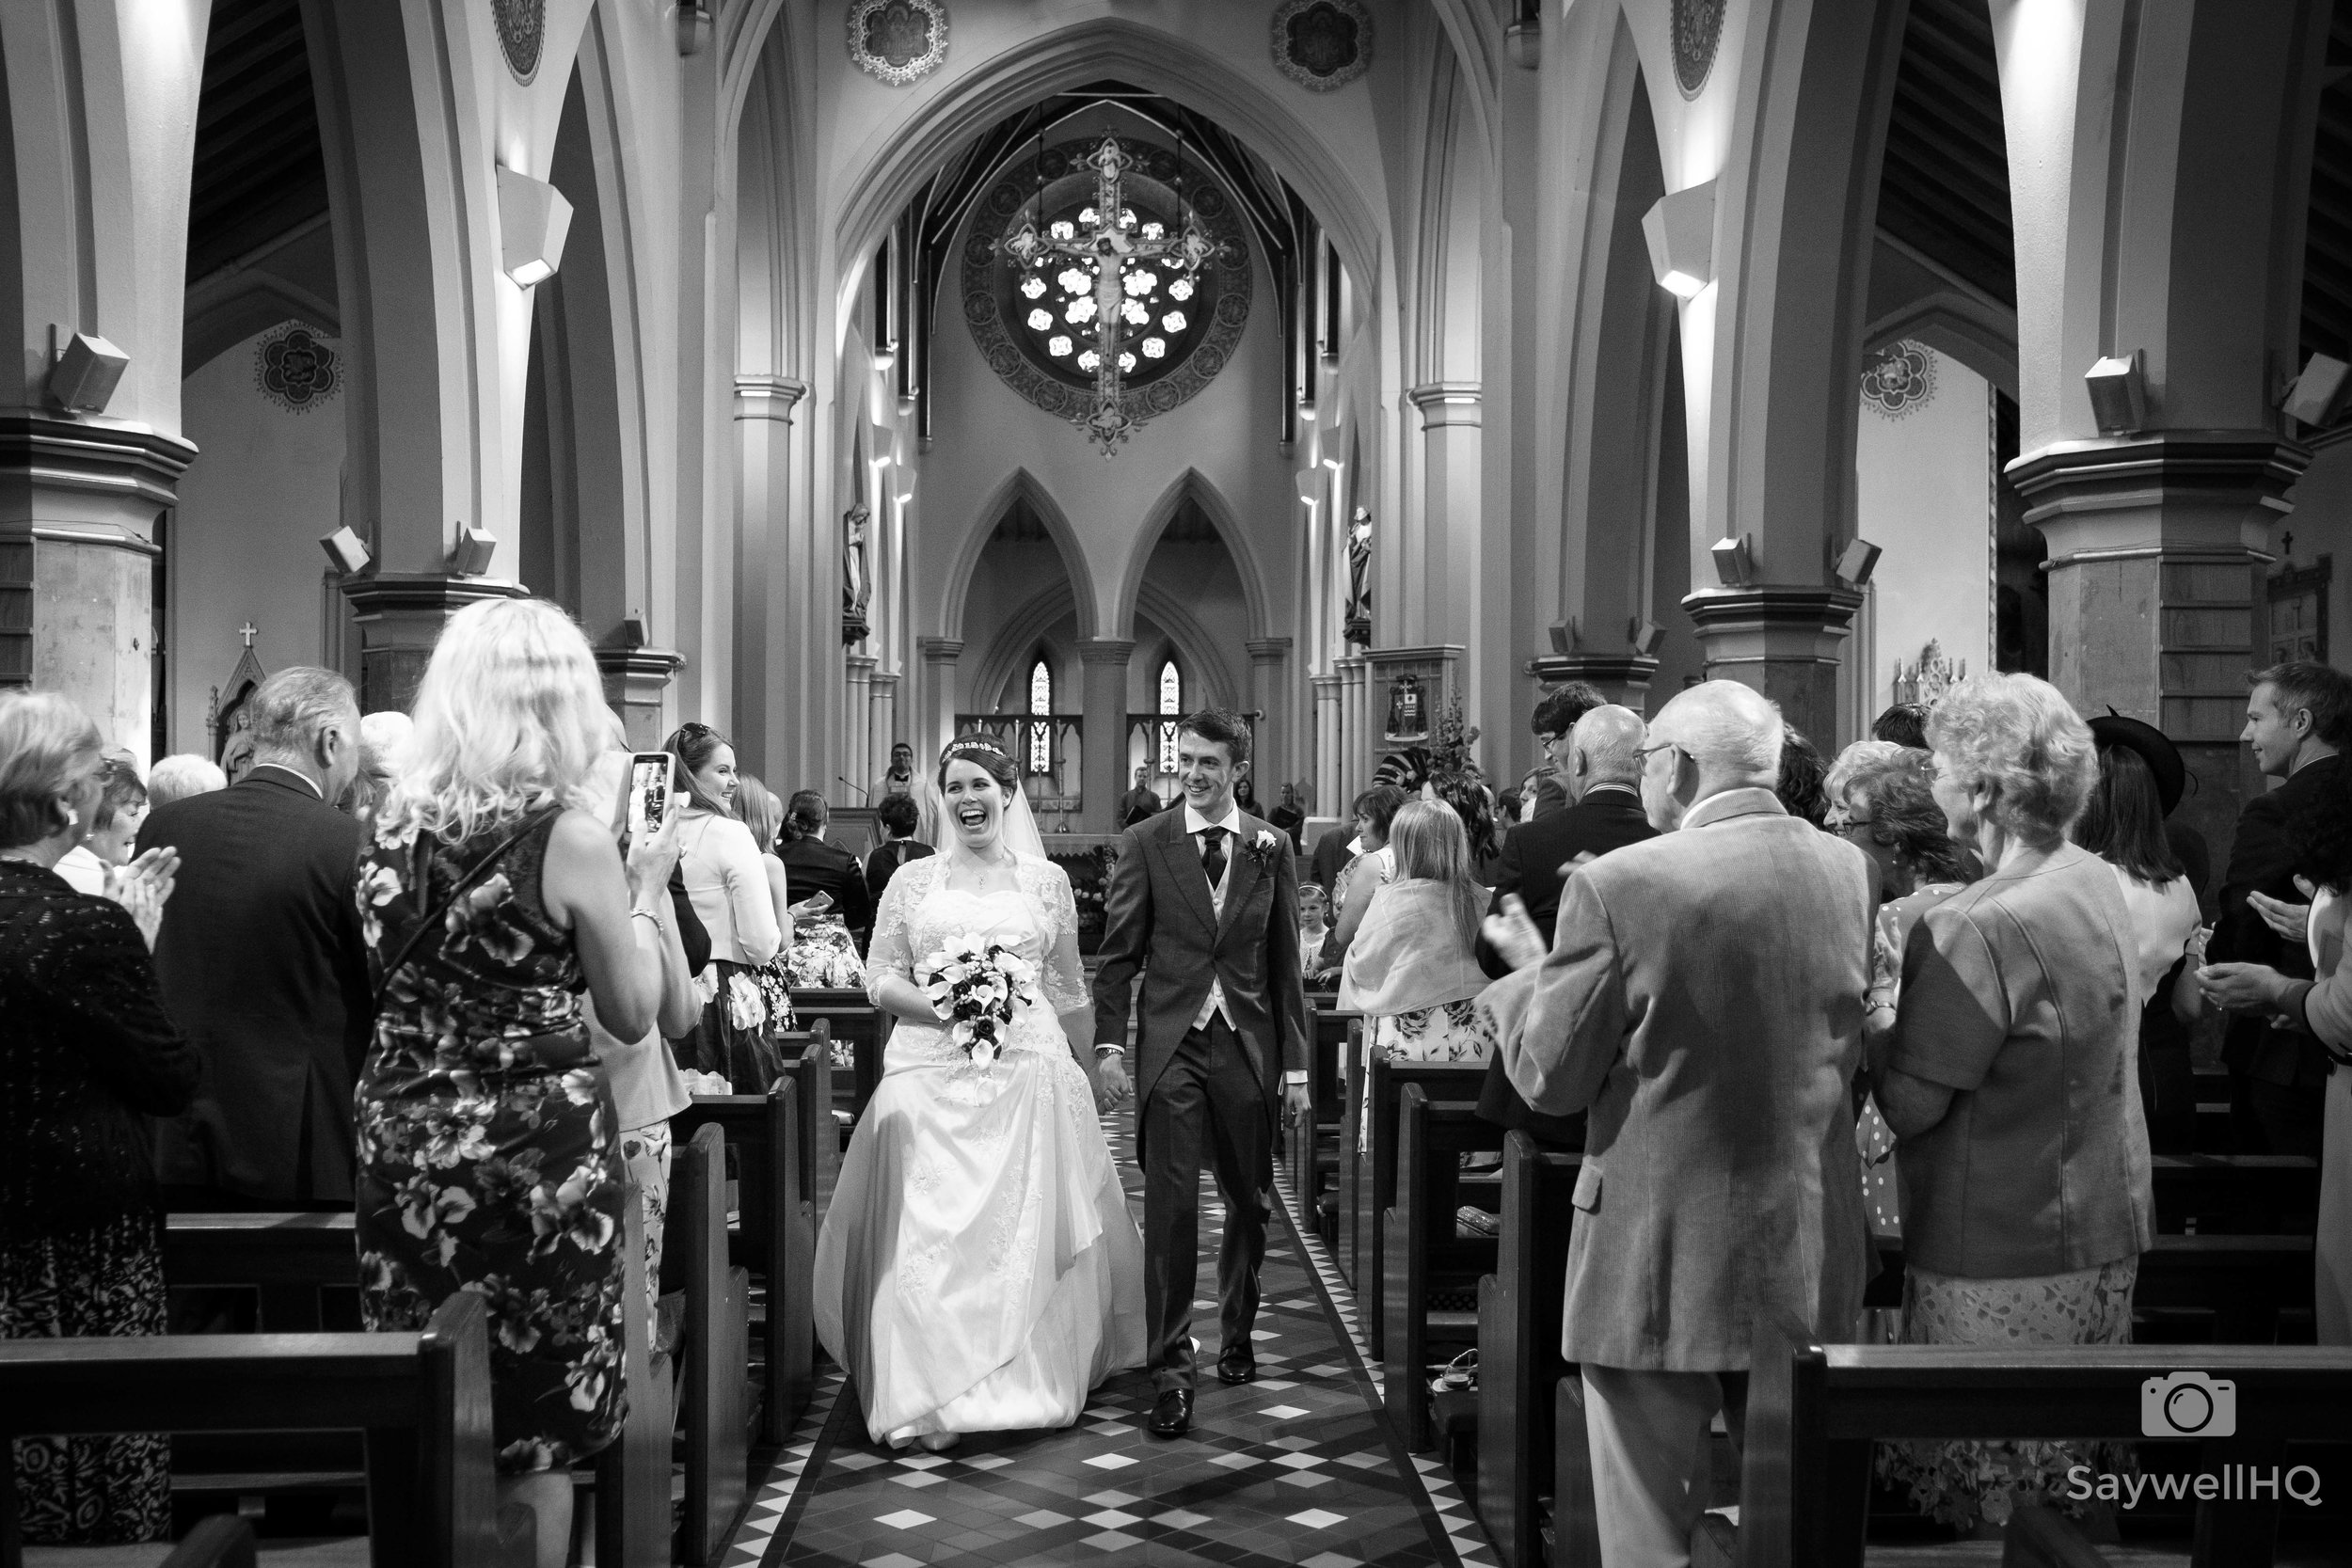 Wedding Photography at St. Barnabas Cathedral in Nottingham + bride + groom walking down the aisle